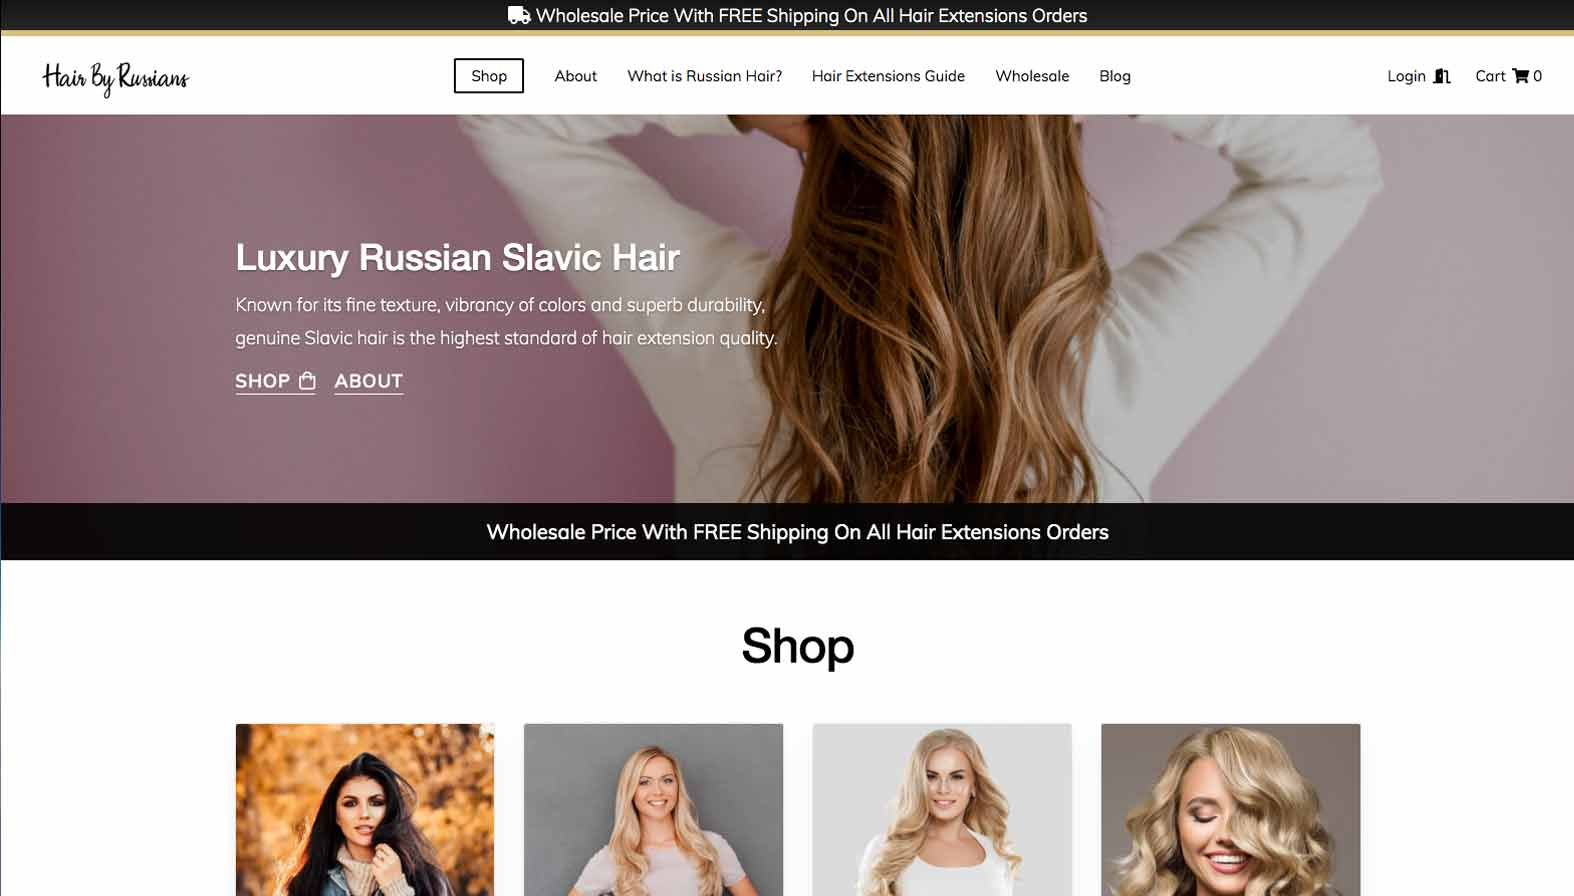 Hair by Russians Desktop Screenshot